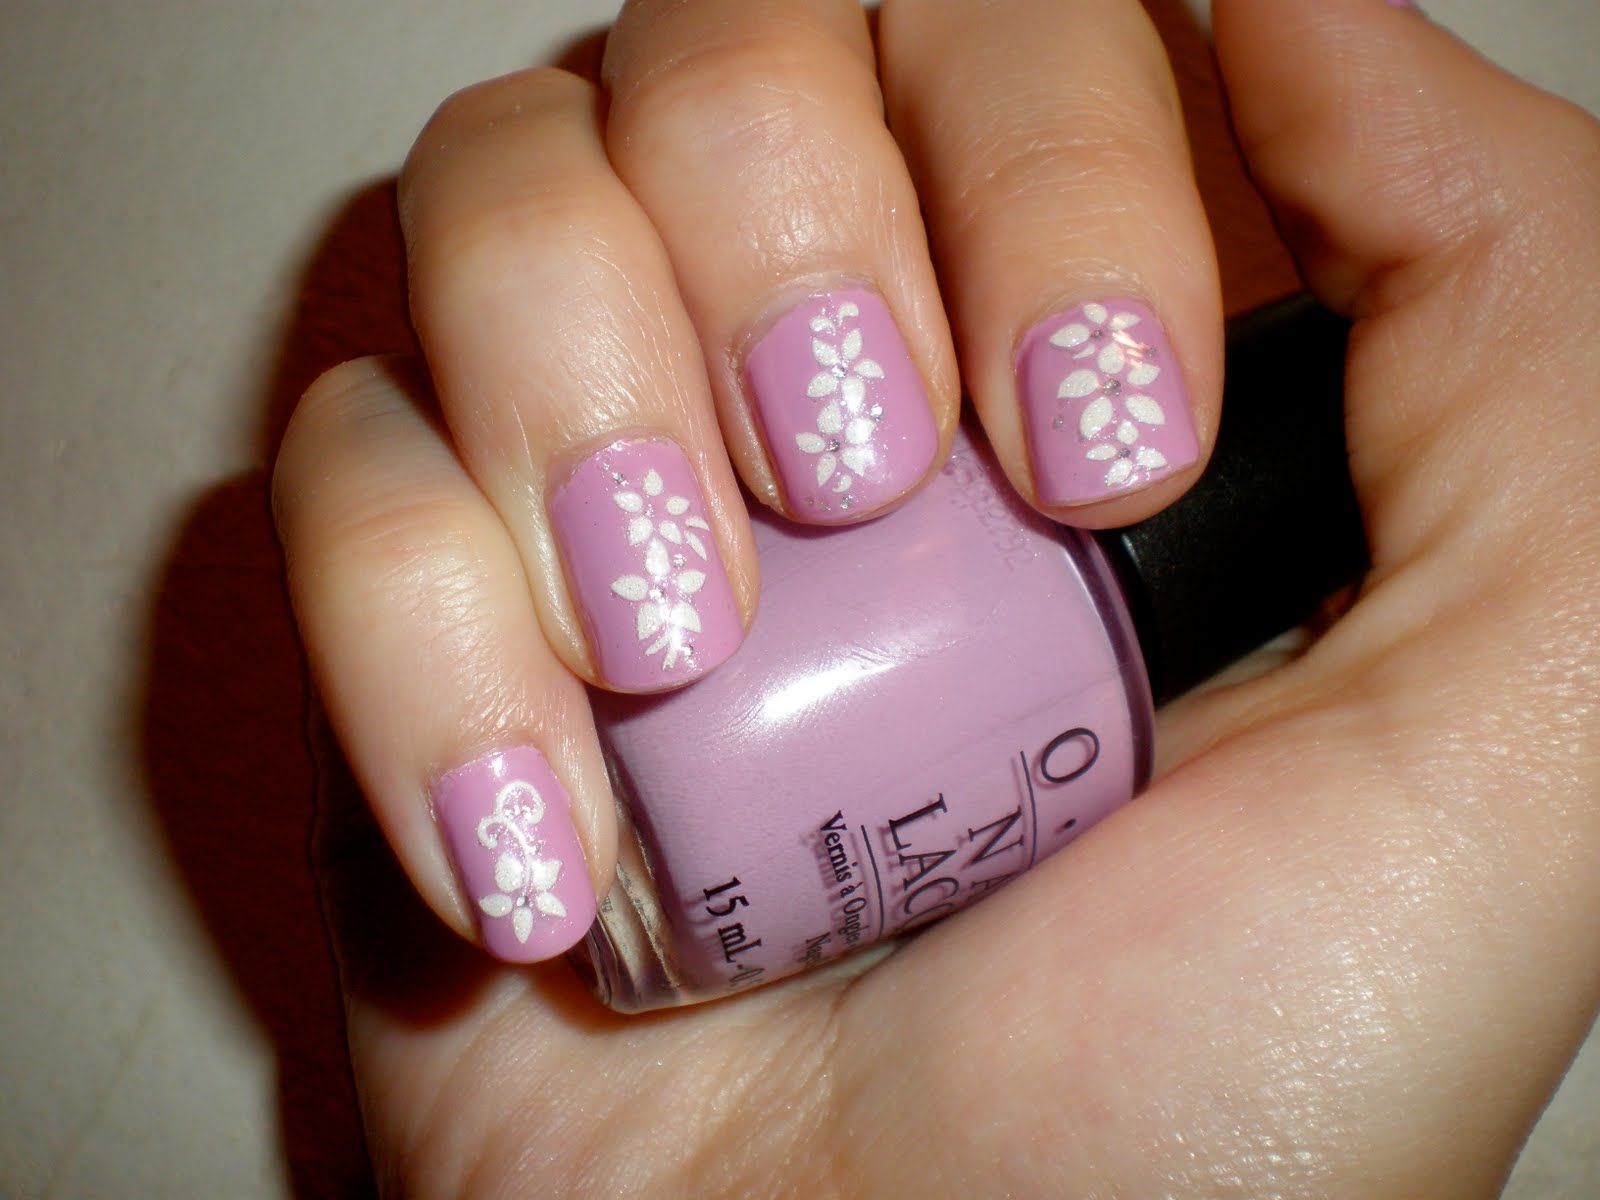 easy nail ideas purple flower easy nail polish designs nail ideas inspiration - Easy Nail Design Ideas